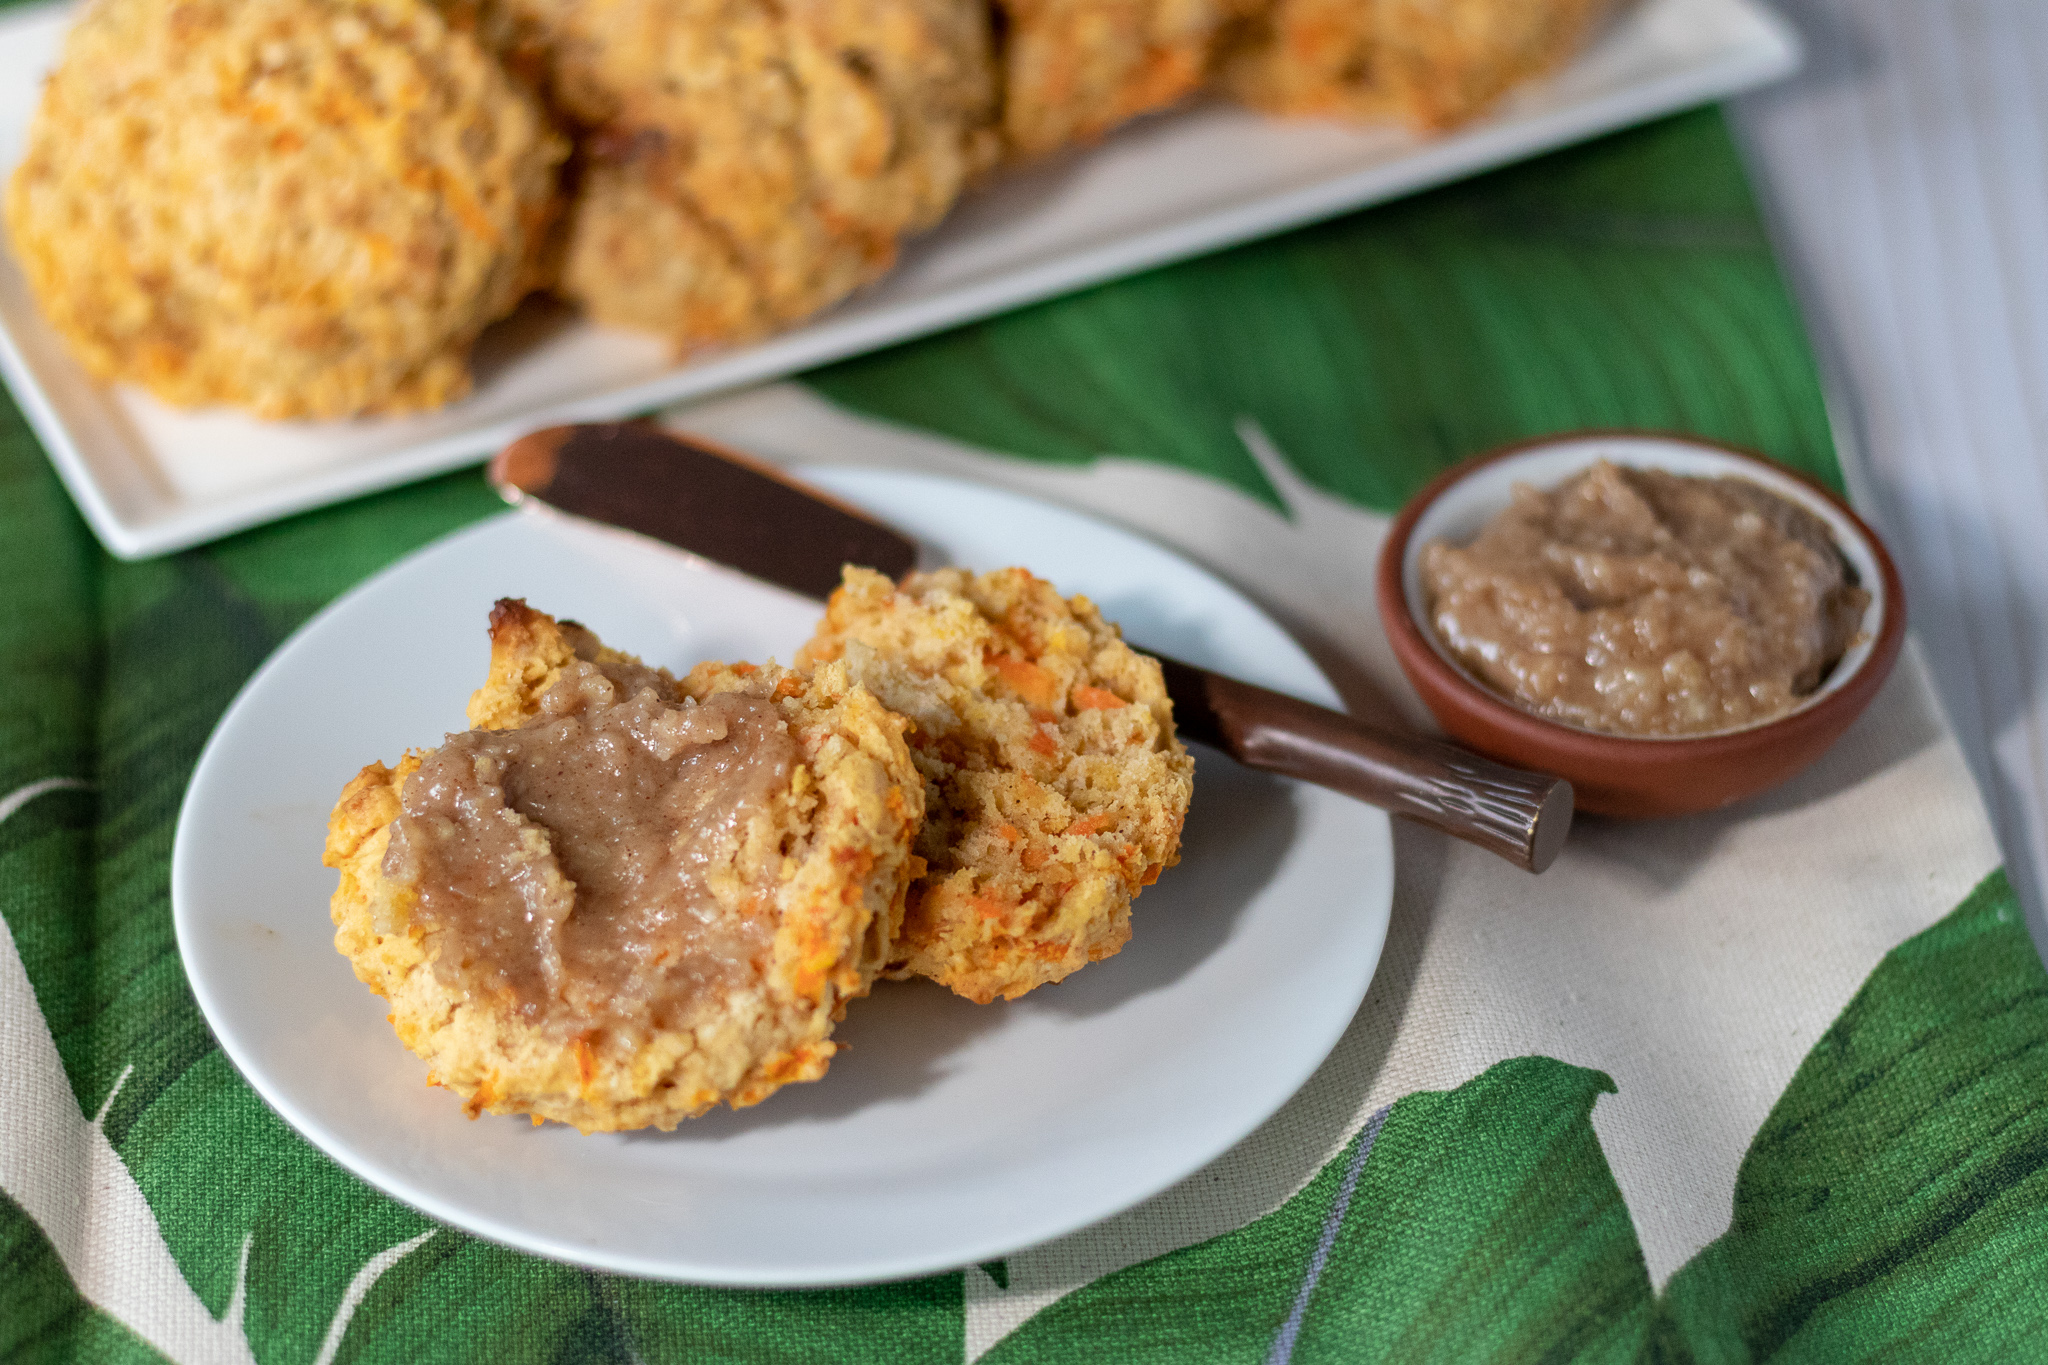 Who says you can't have cake for breakfast, or something pretty close. Carrot cake is one of my favorite cake flavors and biscuits are hands down my favoite bread. So mix the two together, and you have absolute breakfast perfection! These vegan carrot cake biscuits are light and fluffy, packed full of healthy carrots and walnuts. They are just the right amount of sweet and even better topped with our quick and easy Maple Cinnamon Cashew Butter! These little beauties also make a tasty dessert or late afternoon snack. But is there ever a wrong time to eat a biscuit? I don't think so!